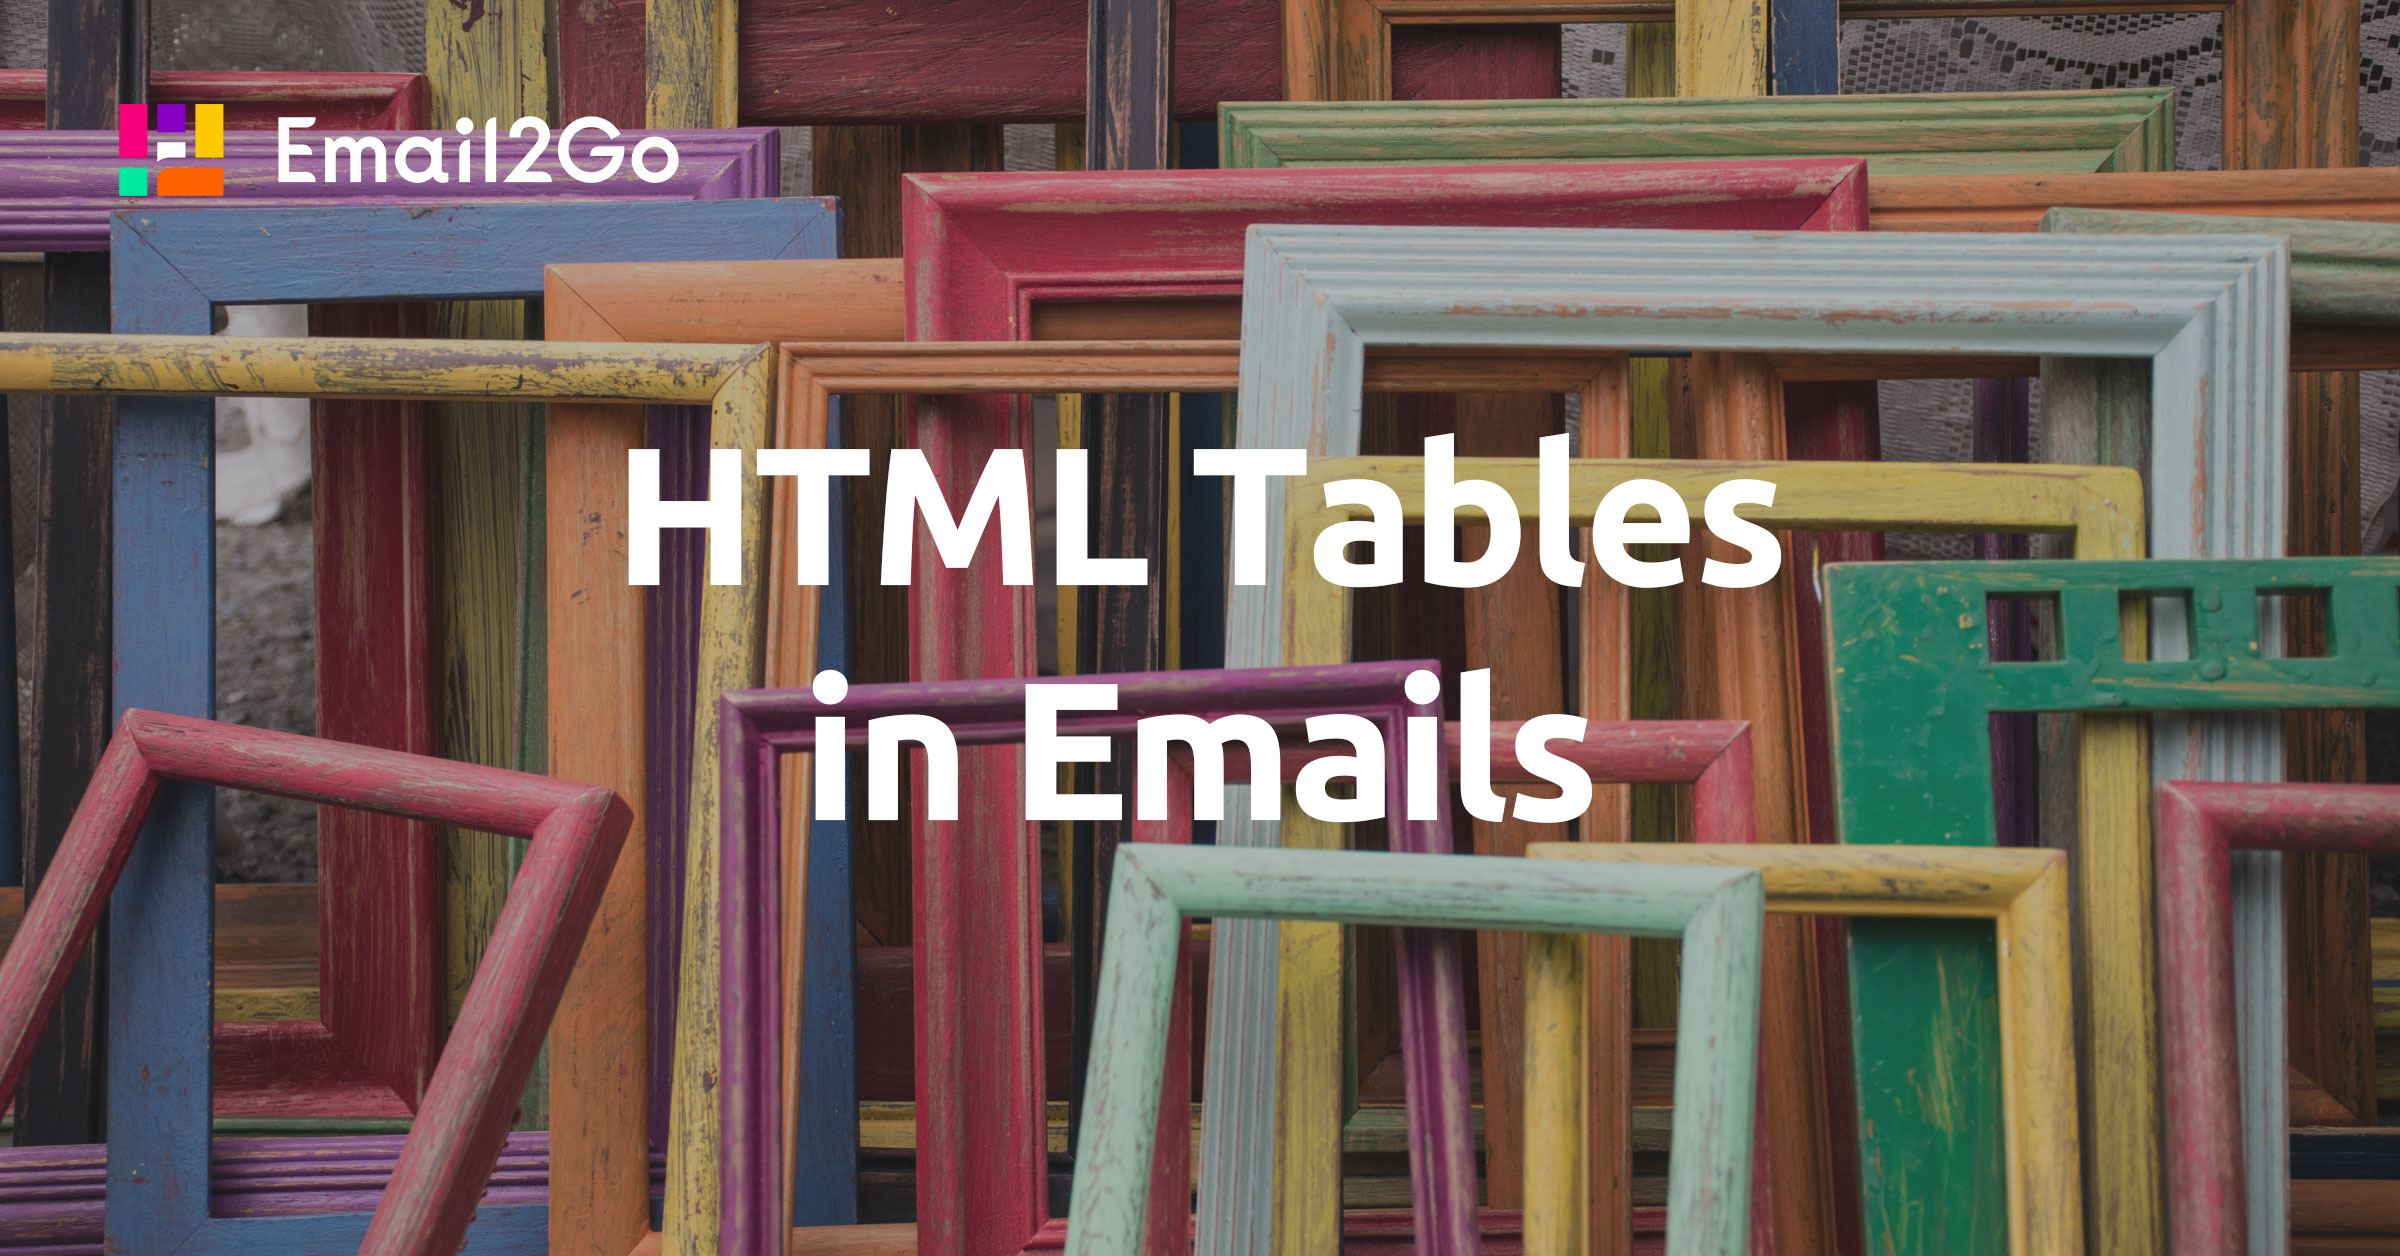 HTML Tables in Emails